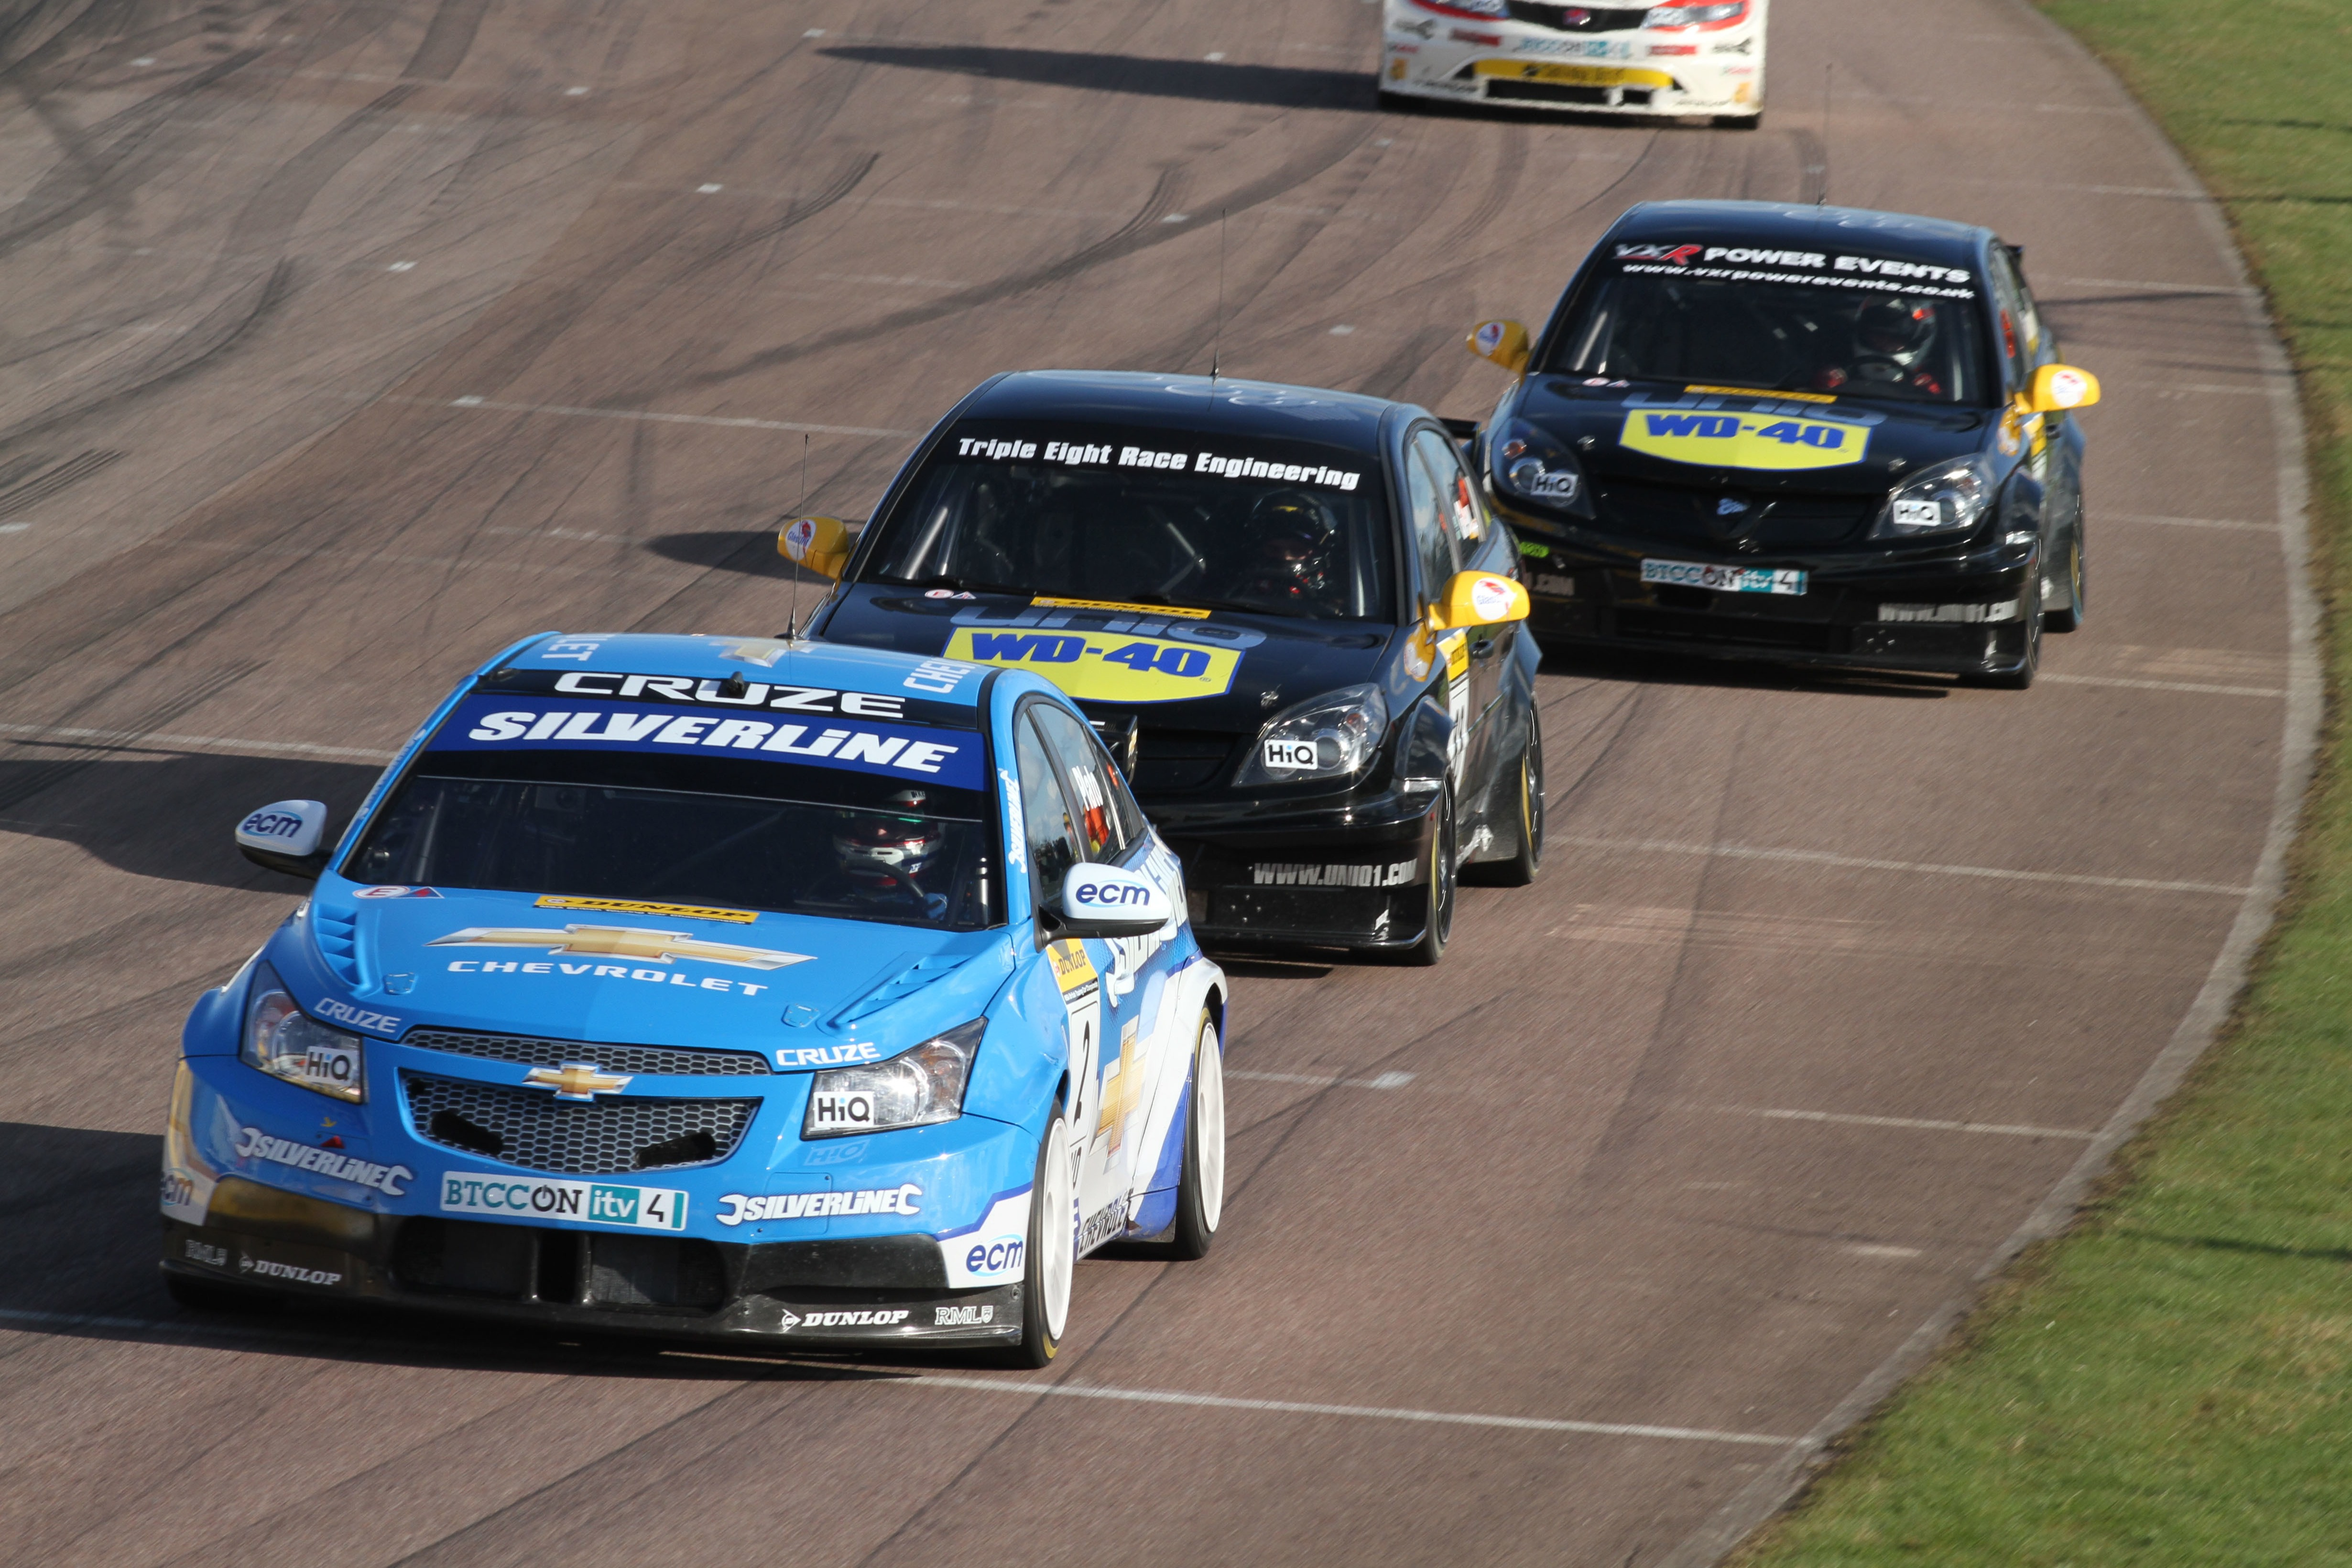 Jason Plato holds off Glew and Giovanardi in race three before the rookie's engine gave up